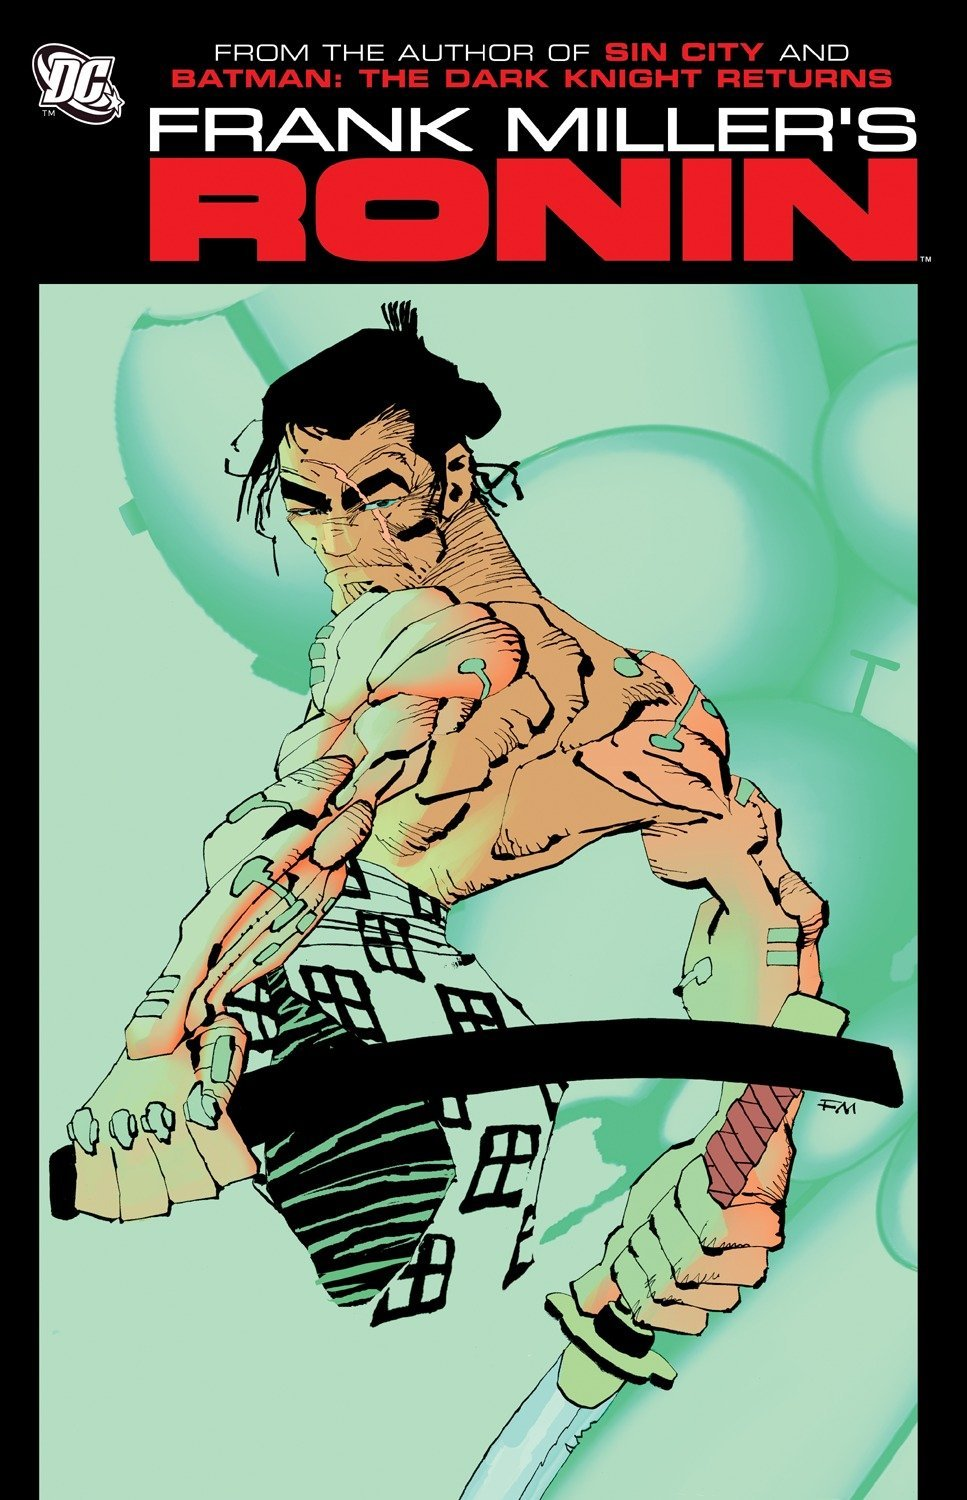 Frank Miller's Ronin by DC Comics